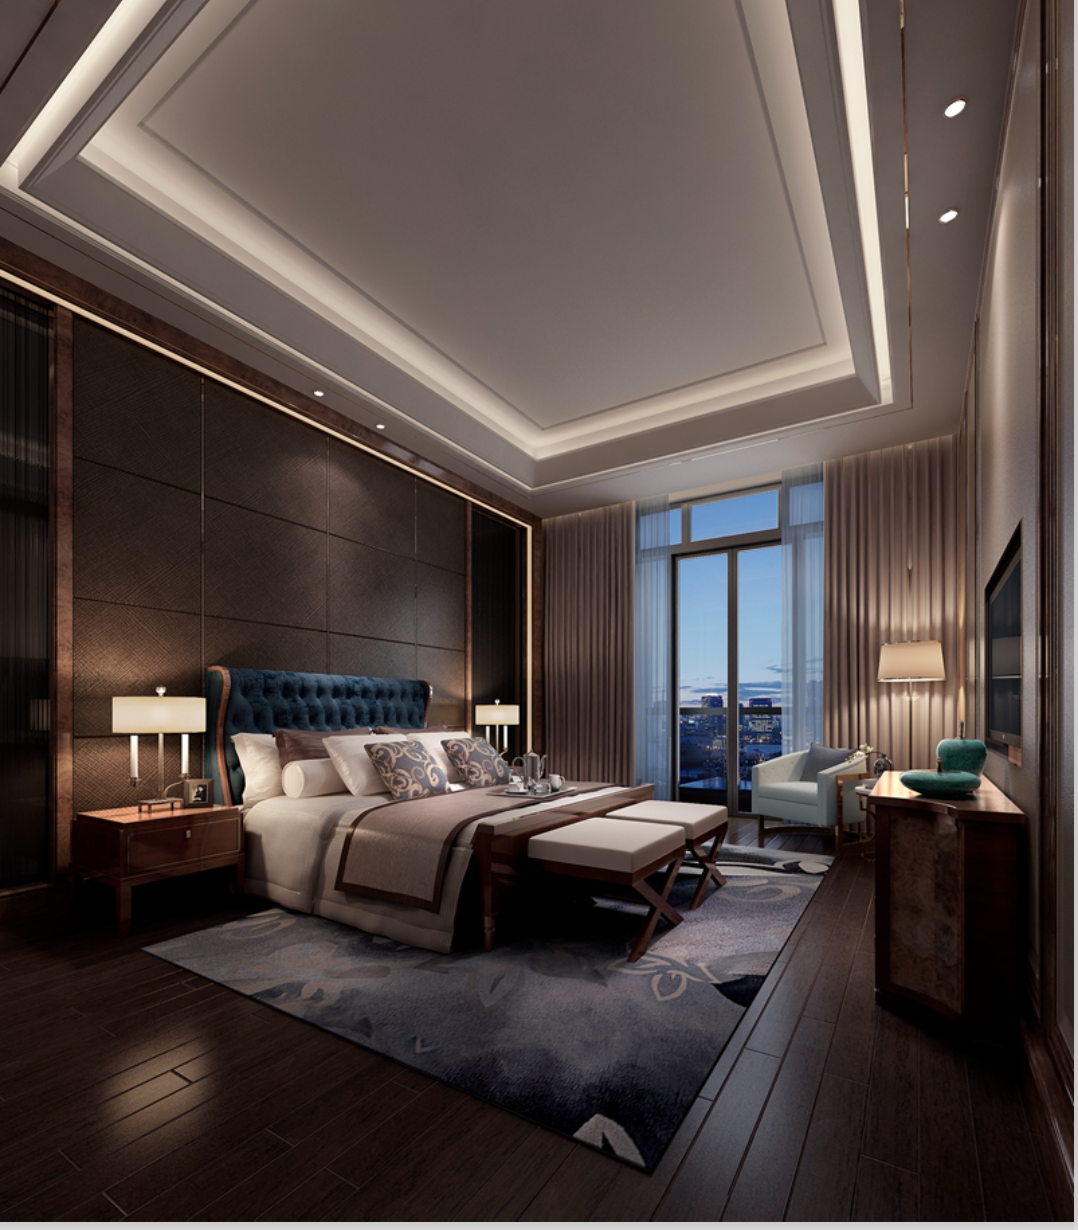 Romantic Bedroomultraluxurious  Homeelegant Bedrooms Amazing Elegant Bedrooms Designs Decorating Design